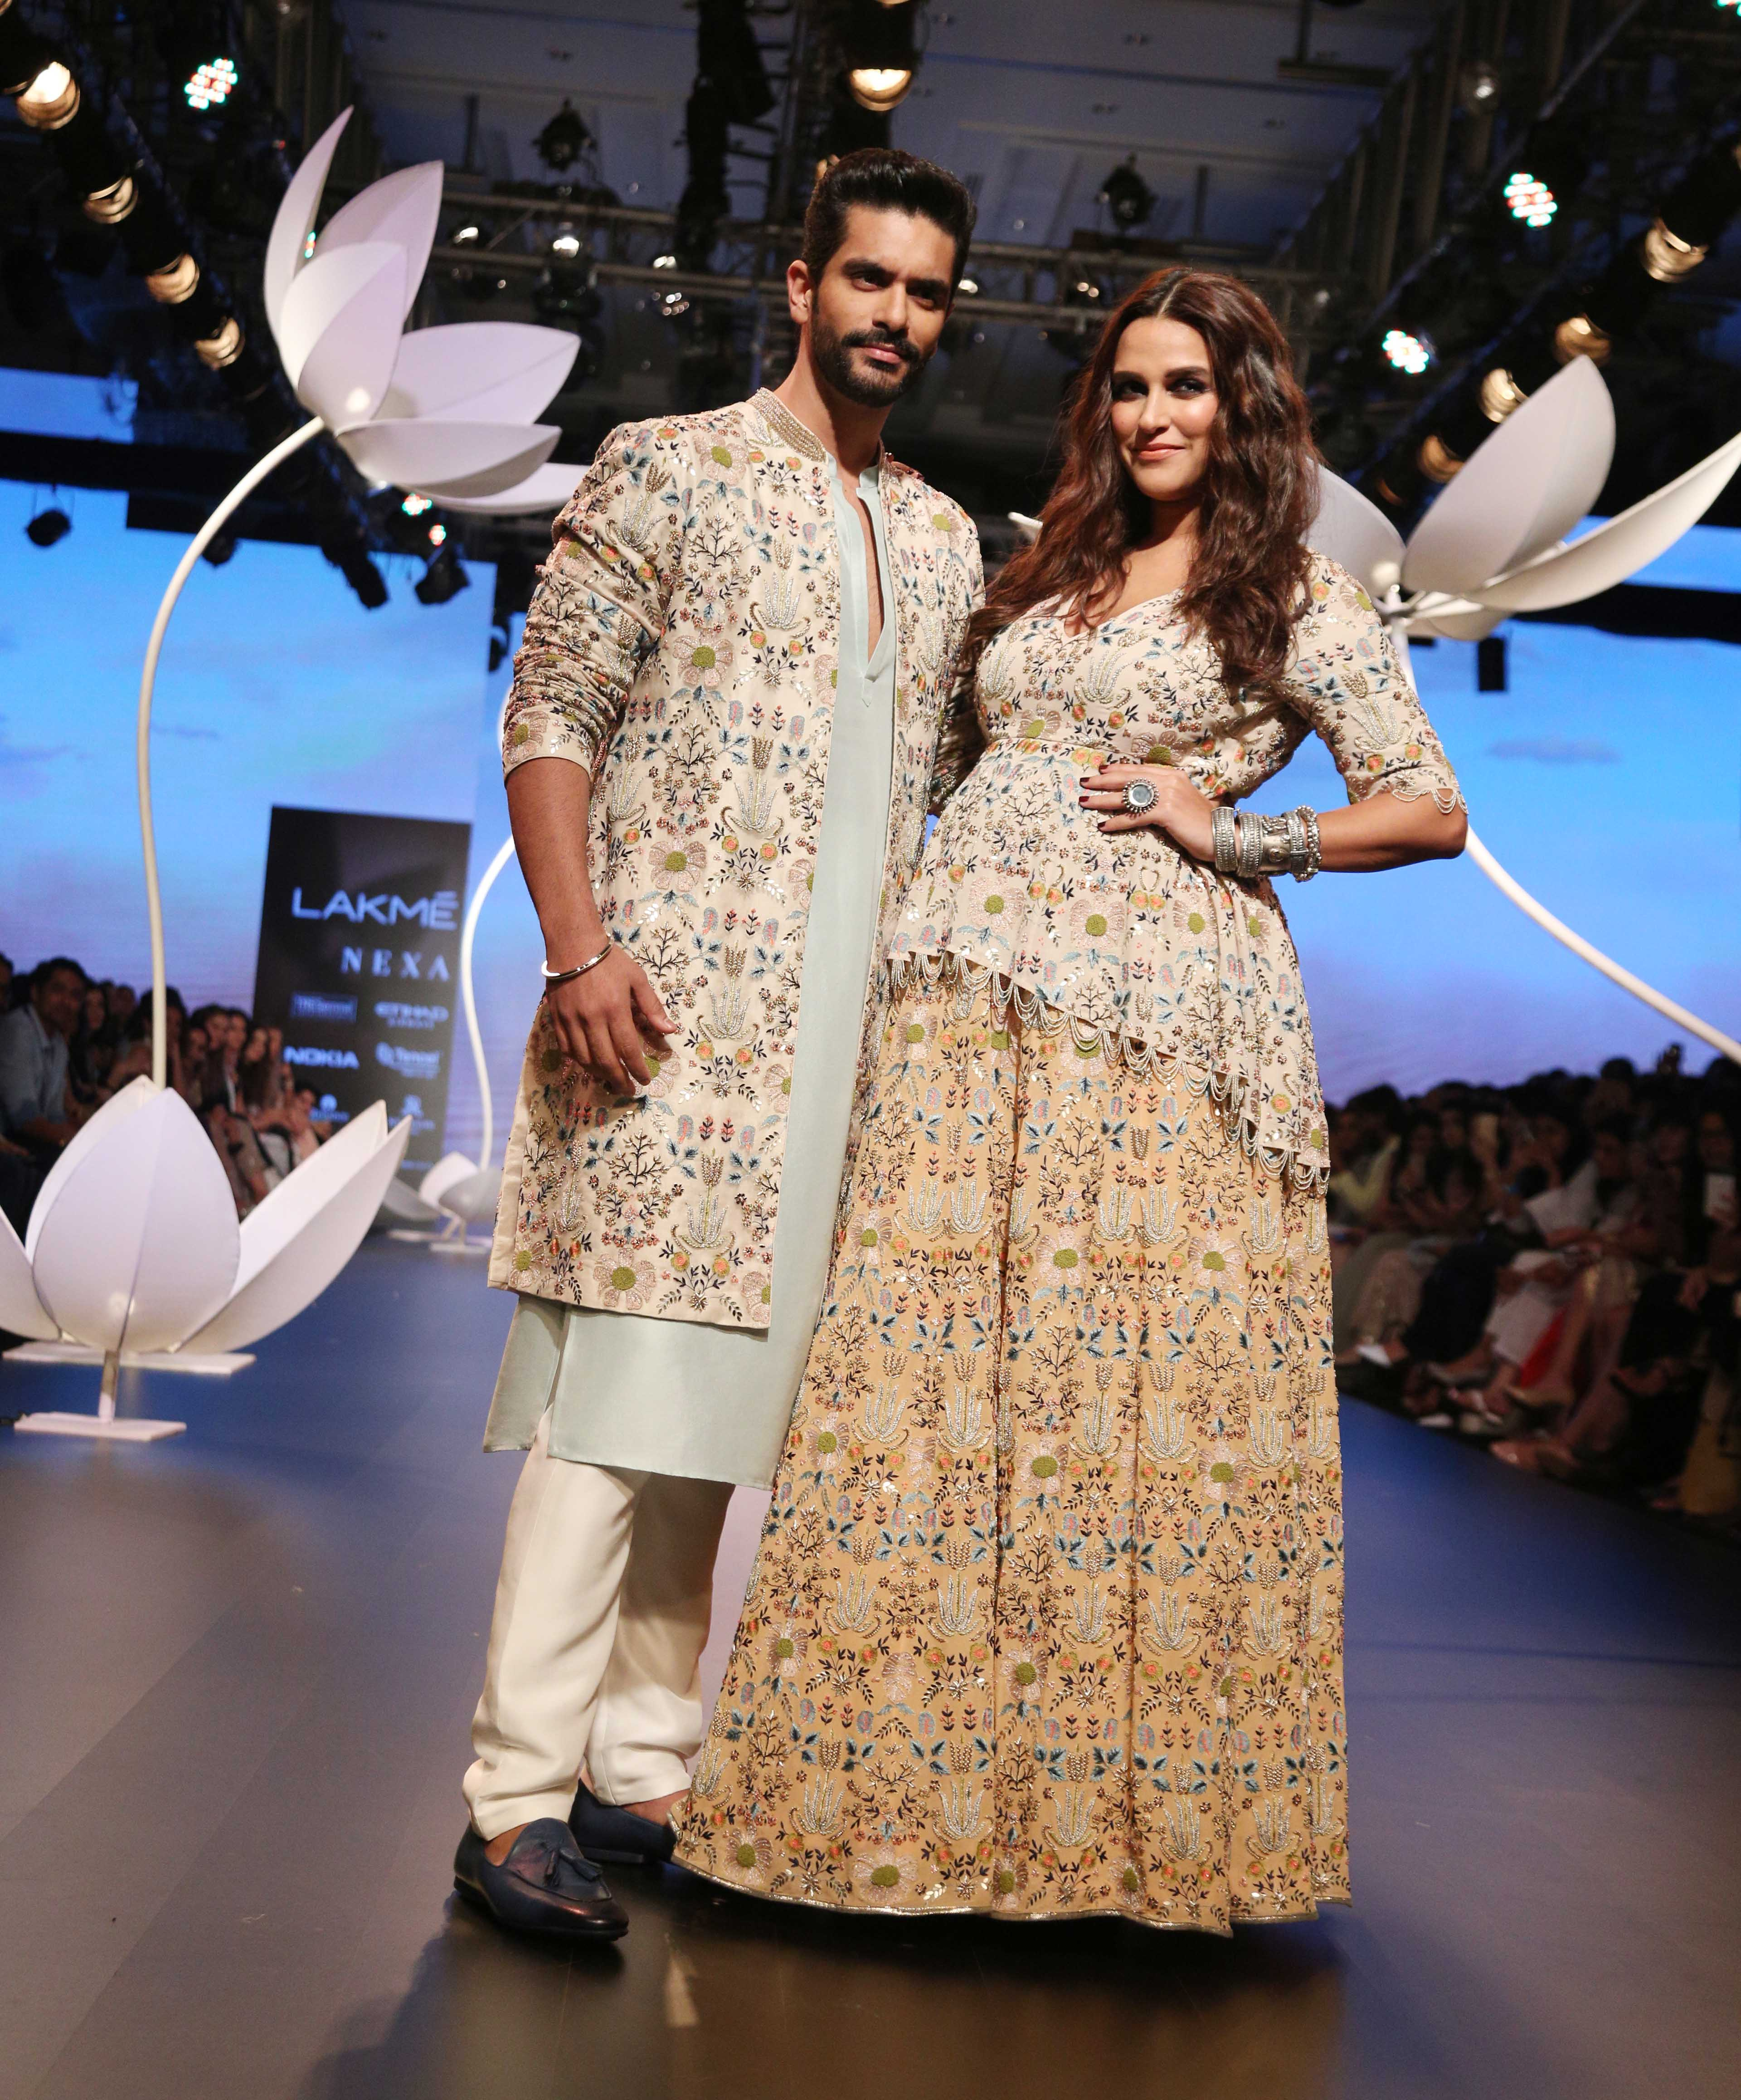 lfw 2018 DAY 4 SHOW 4 LAKME SALON AND PAYAL SINGHAL PRESENT THE SHOW STOPPING BRIDE (50)